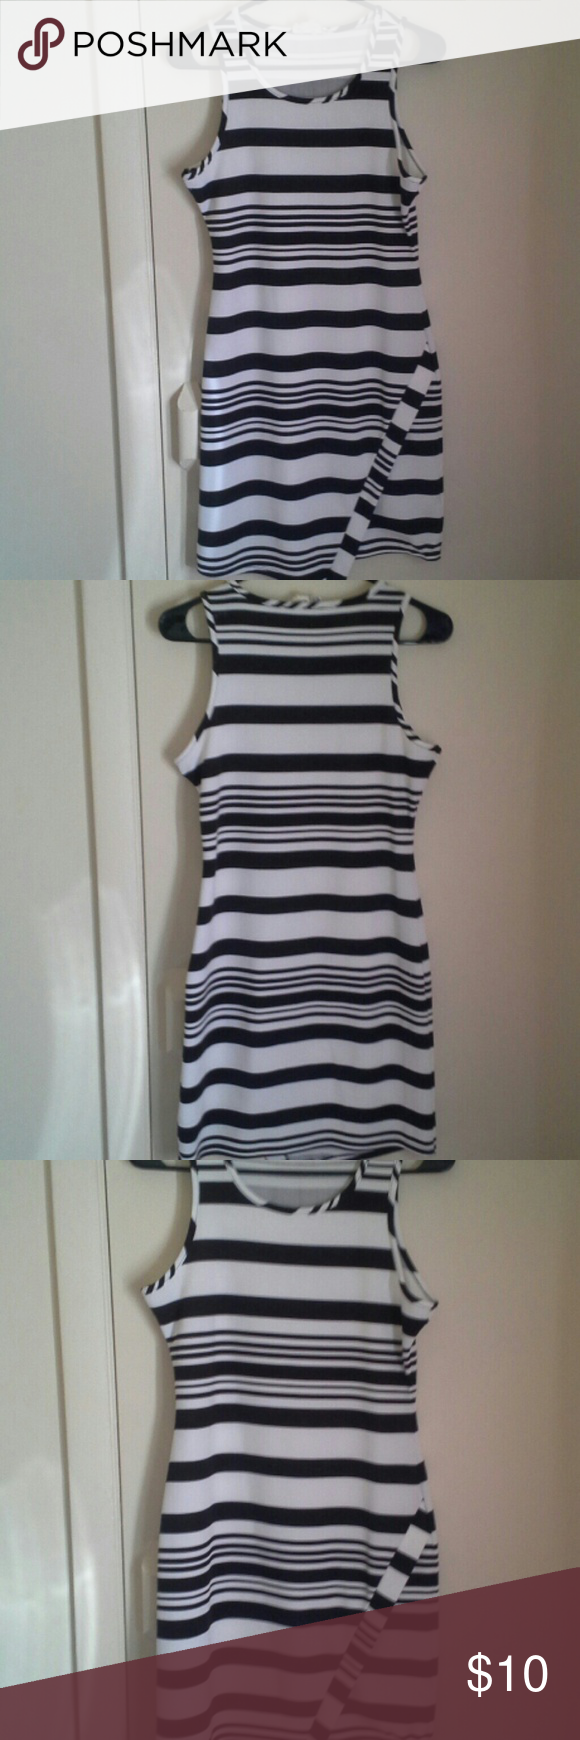 Dress white with black stripes.  Medium. Super cute white dress with black stripes. Perfect for summer. Has been worn, but great condition. Size medium. pink Republic Dresses Mini